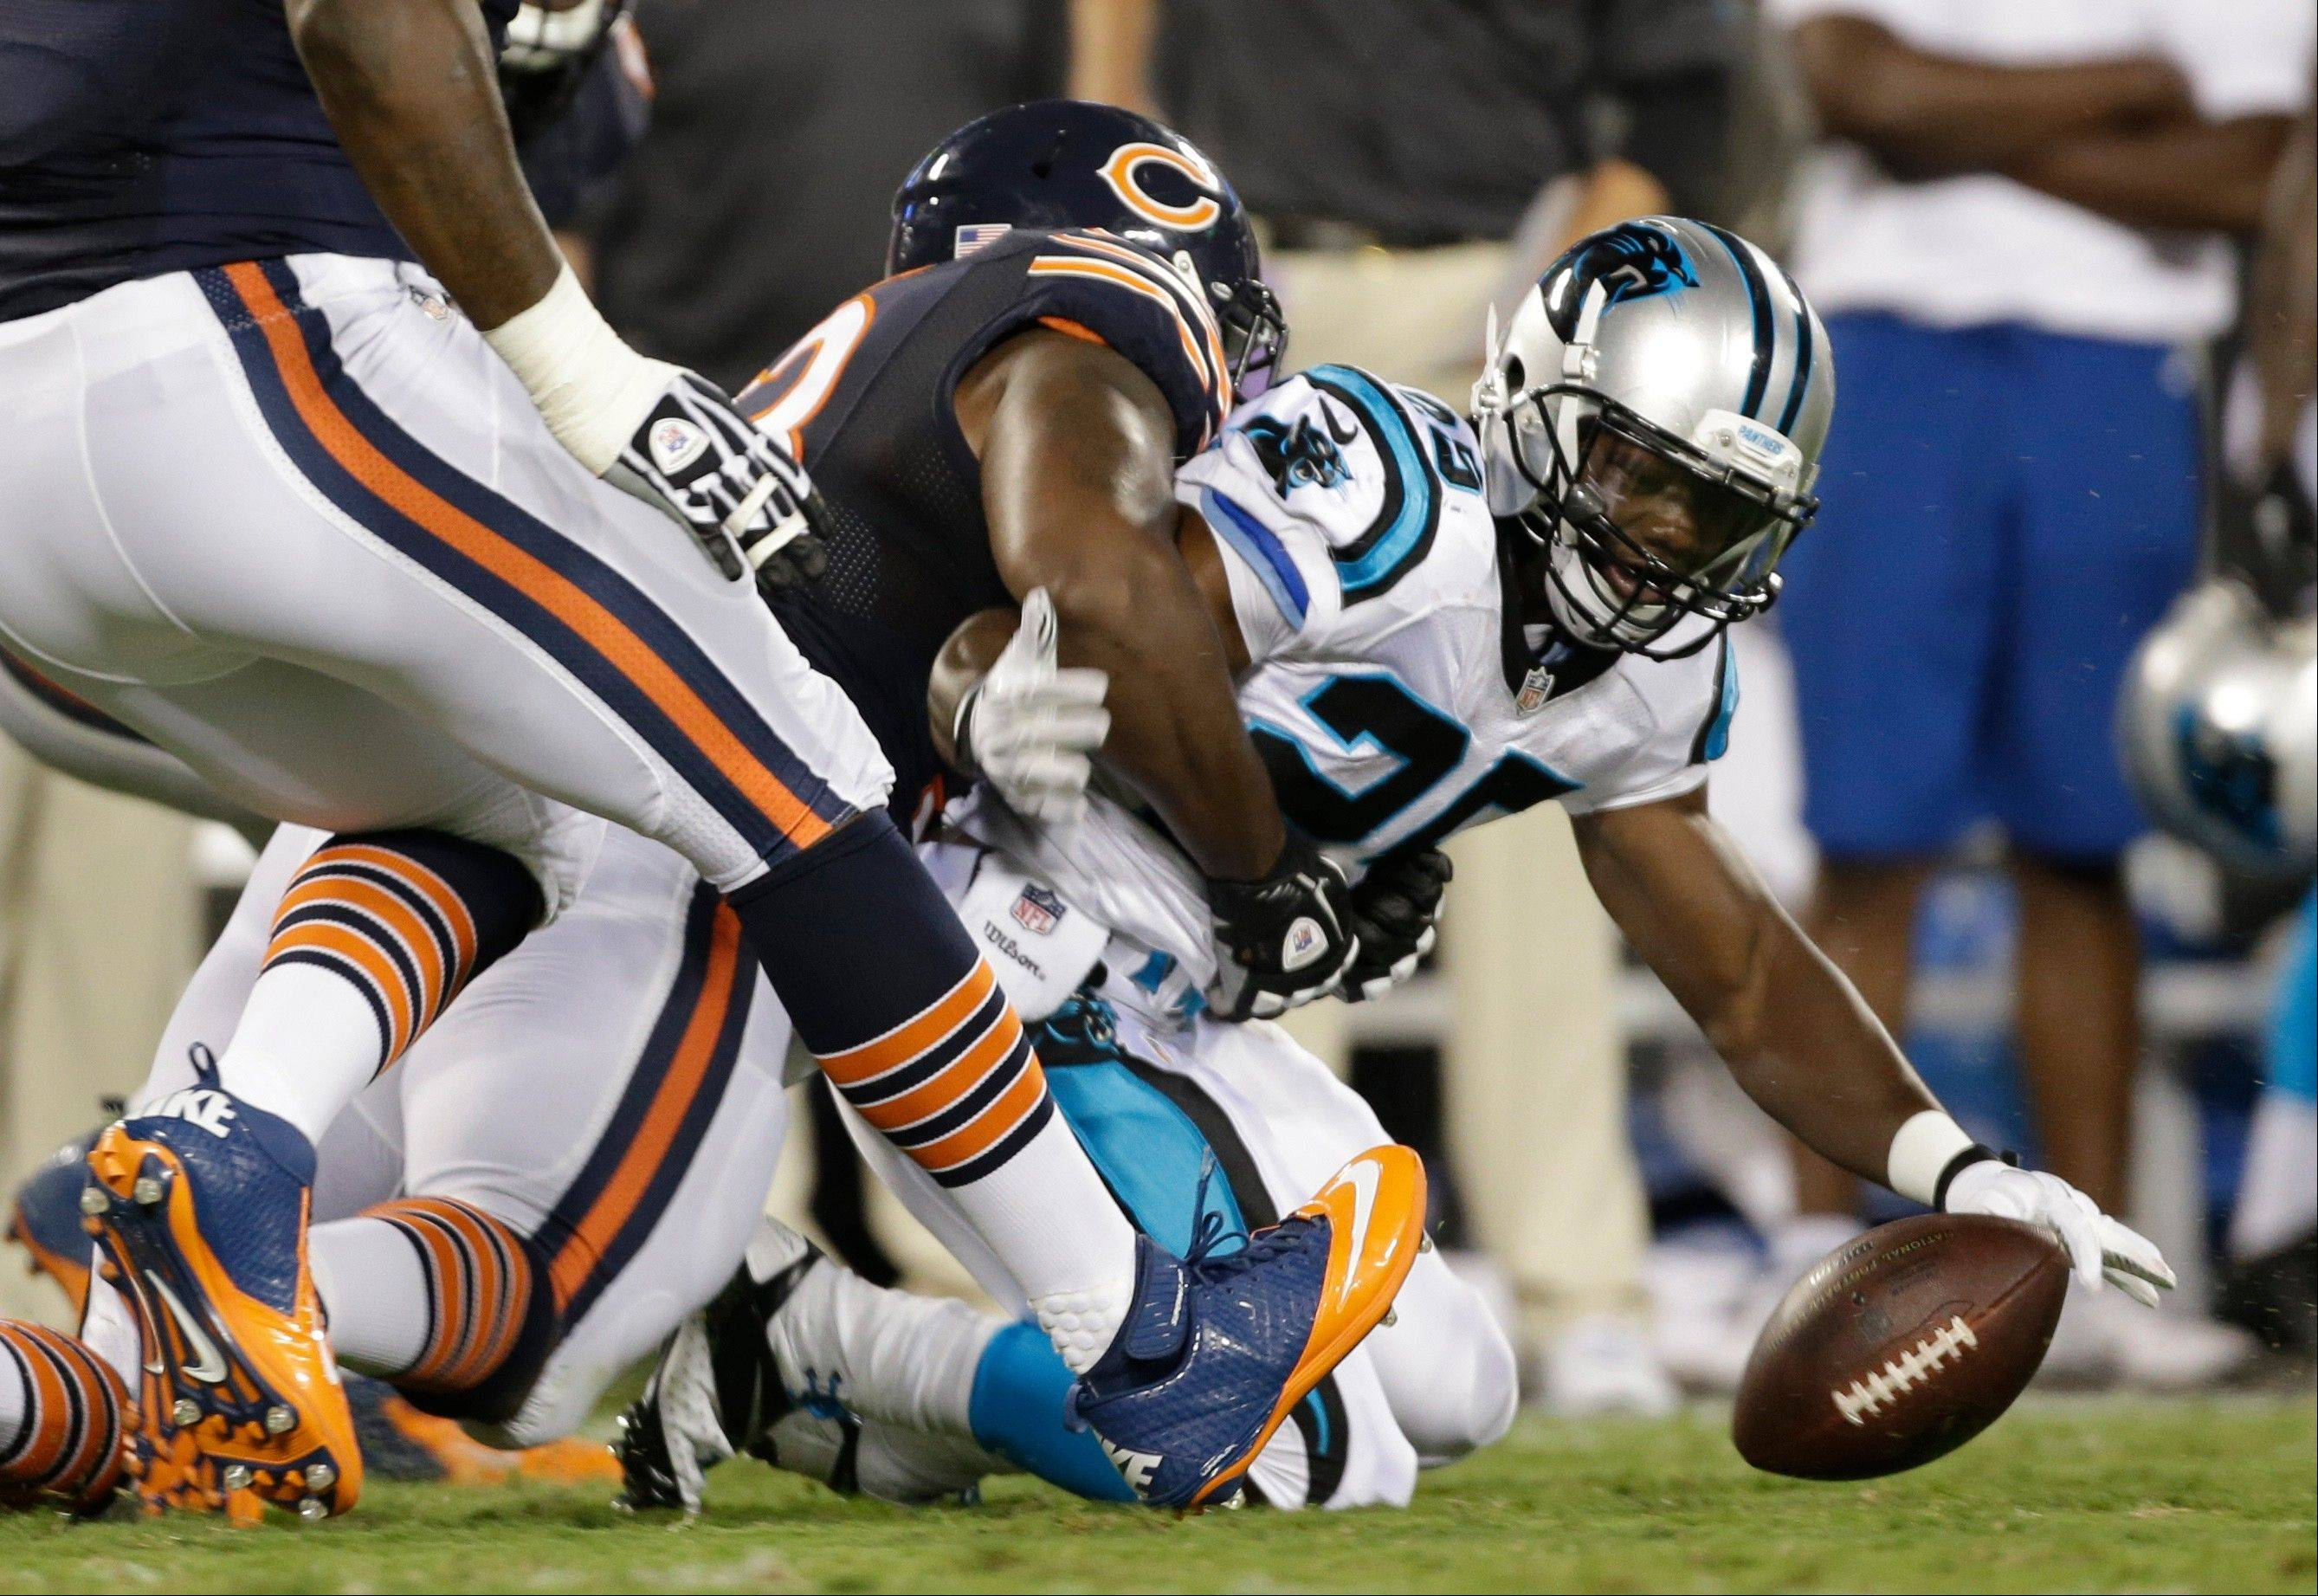 Carolina Panthers' Kenjon Barner, right, fumbles the ball after being hit by the Bears' Nate Collins, left, during the first half of a preseason NFL game in Charlotte, N.C., on Friday, Aug. 9, 2013. The Bears recovered the ball.